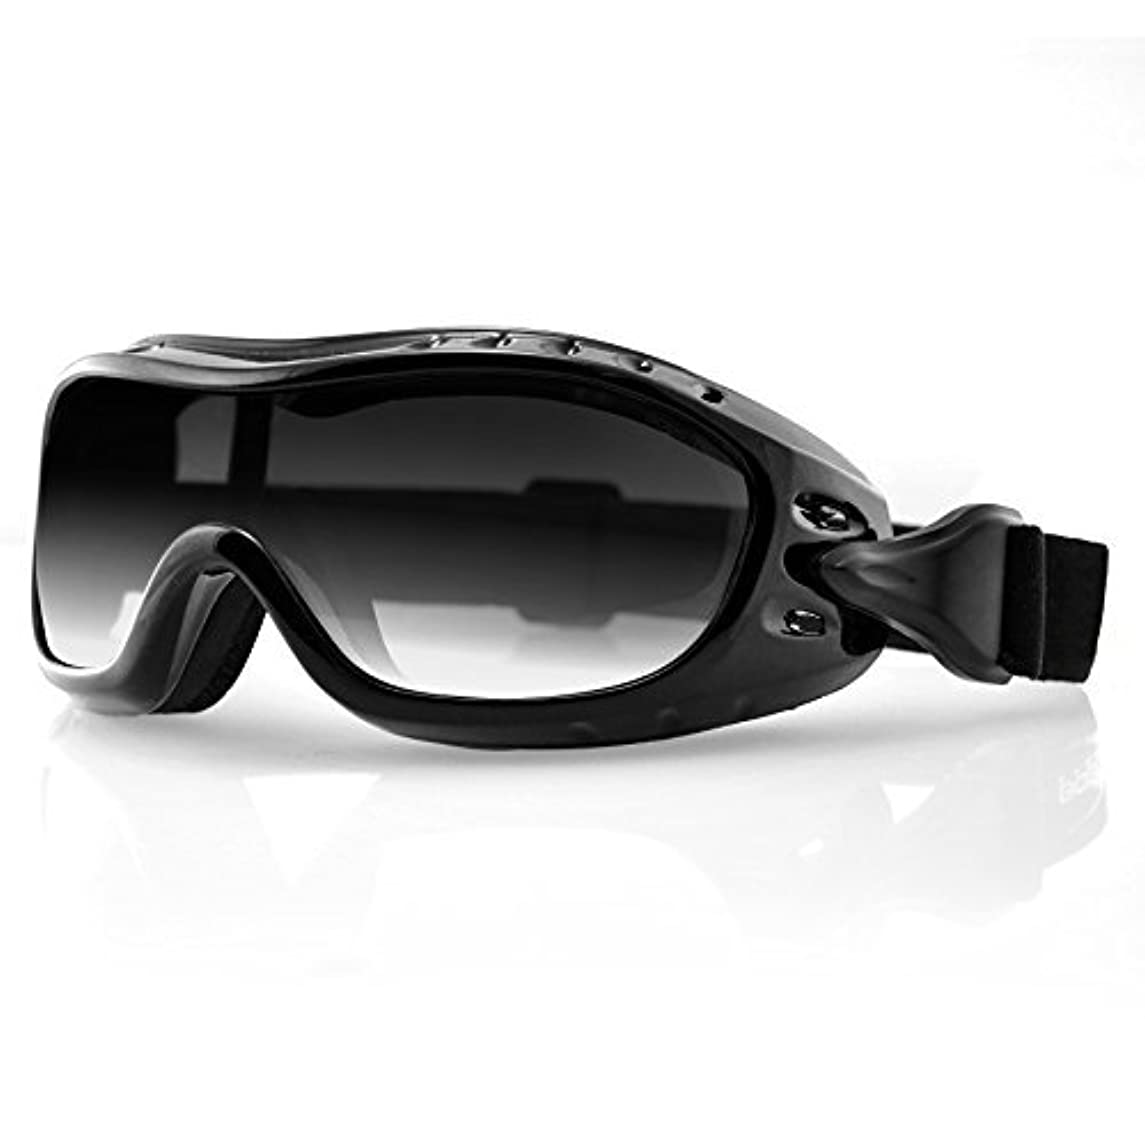 Bobster Night Hawk II Over the Glass Goggle with Photochromic Lens by Bobster